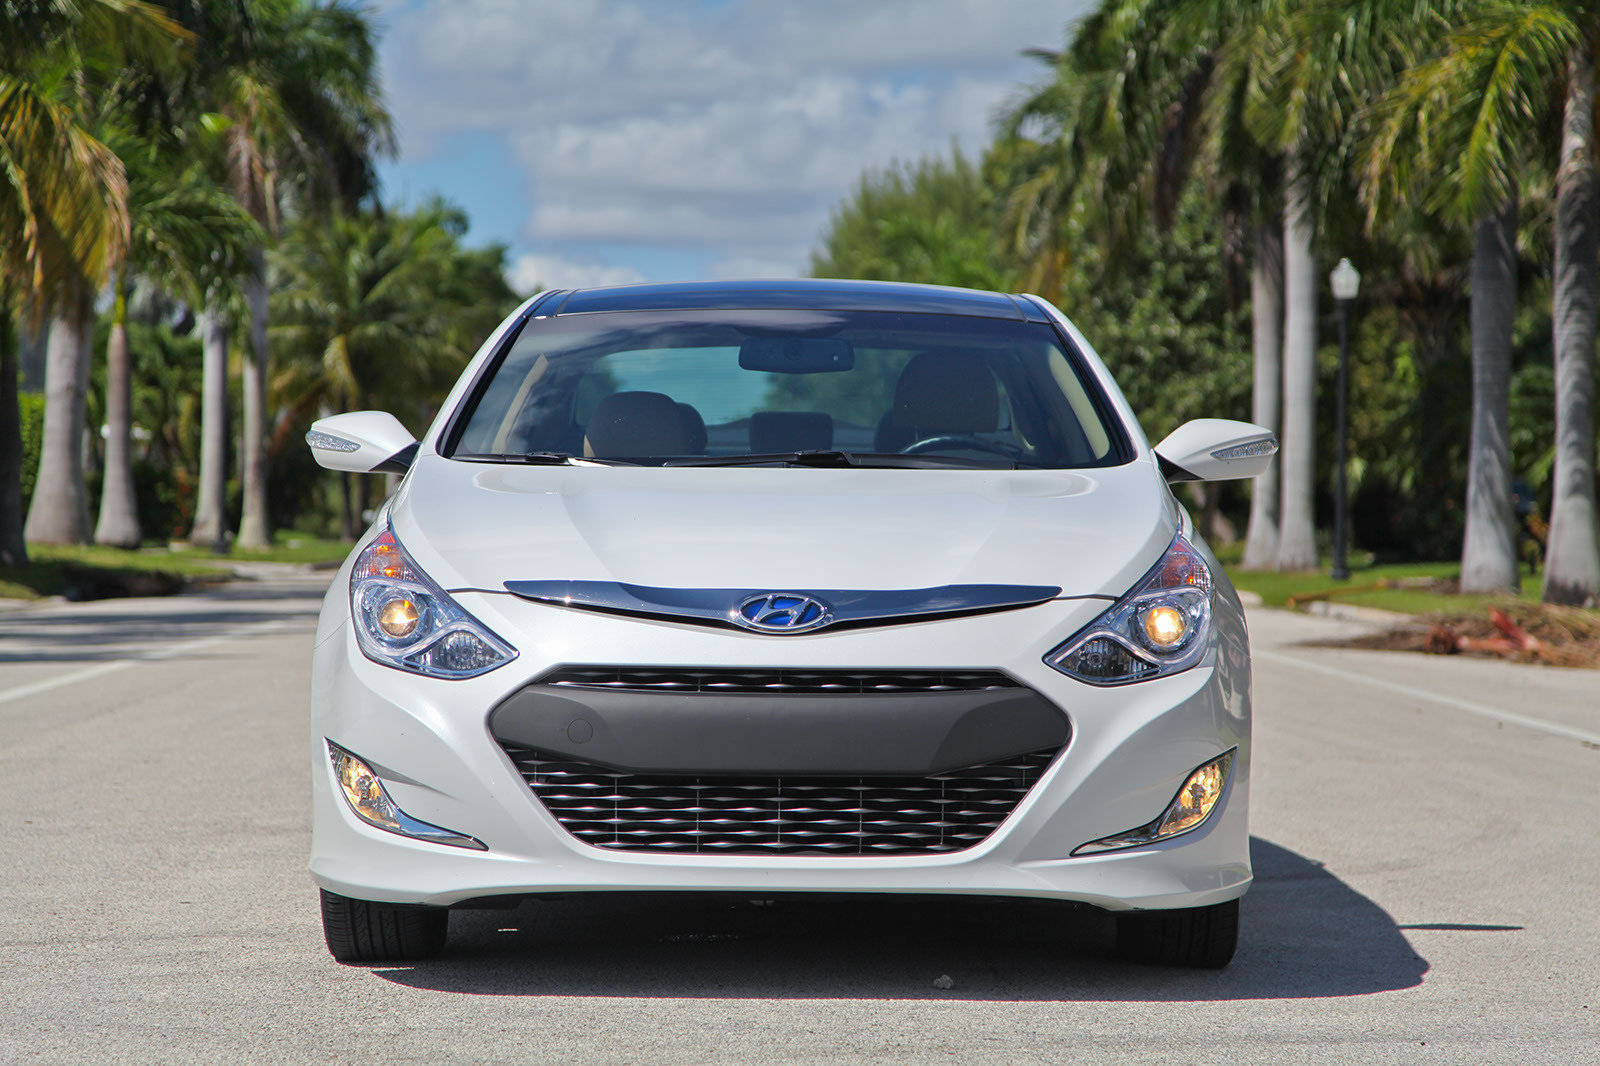 2013 hyundai sonata hybrid limited picture 526978 car review top speed. Black Bedroom Furniture Sets. Home Design Ideas